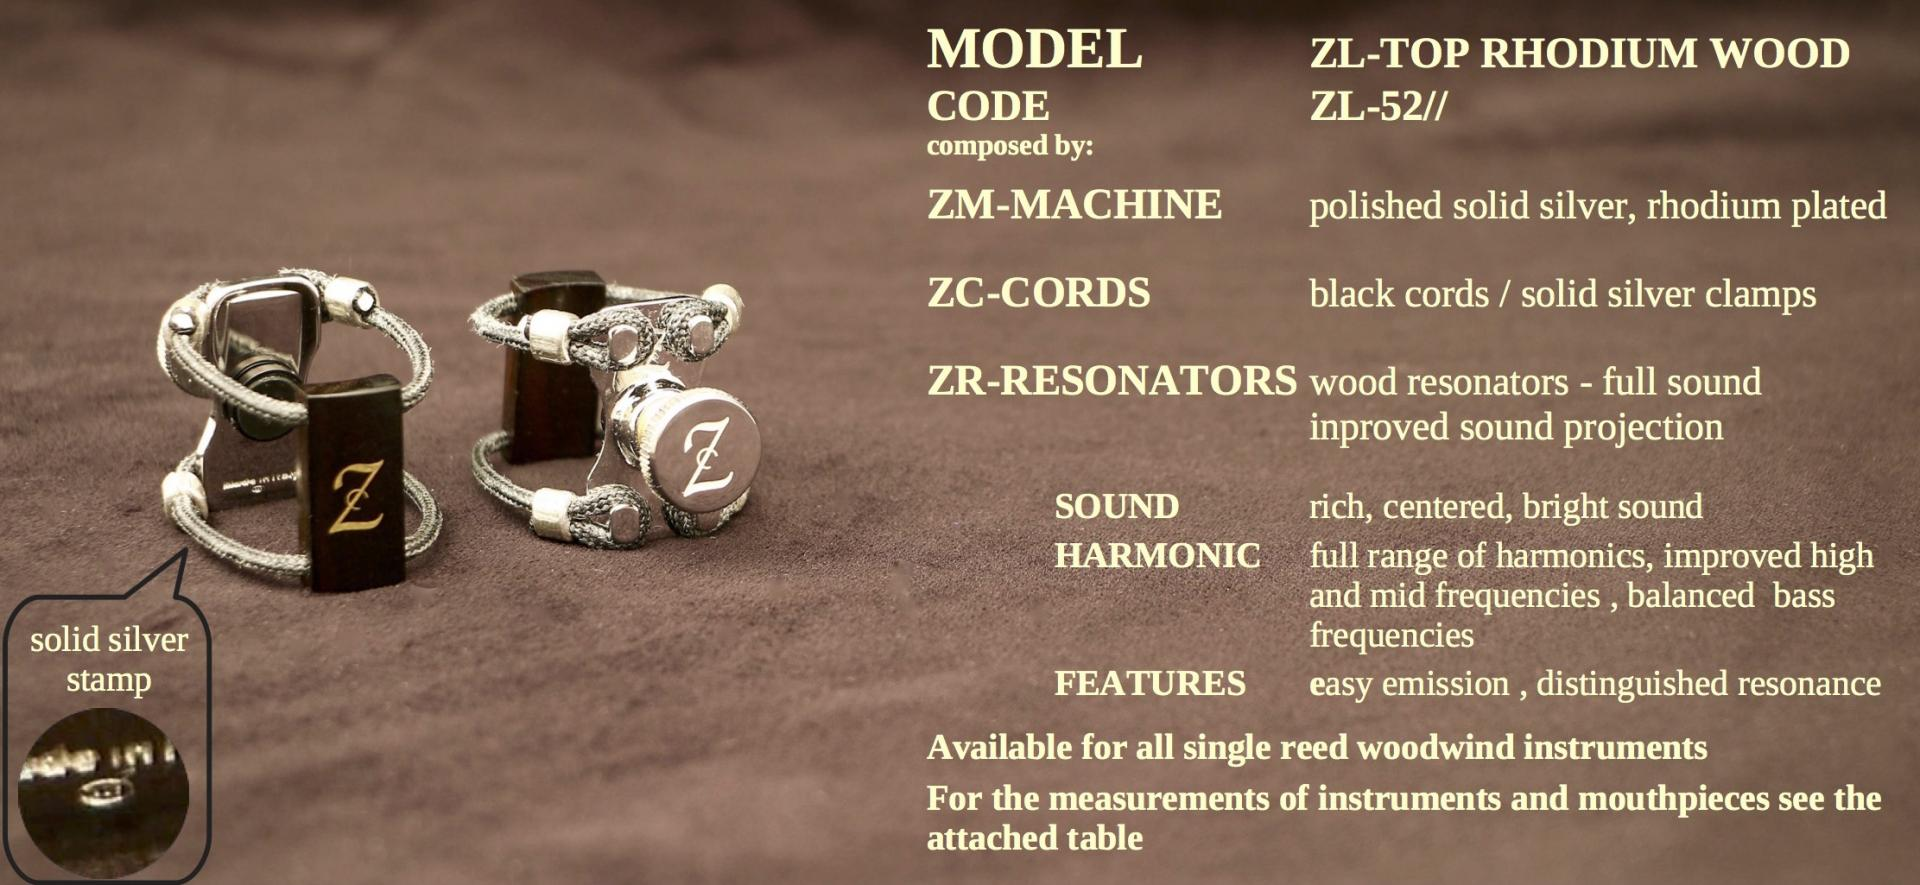 ZAC LIGATURE MODEL: ZL-TOP RHODIUM WOOD